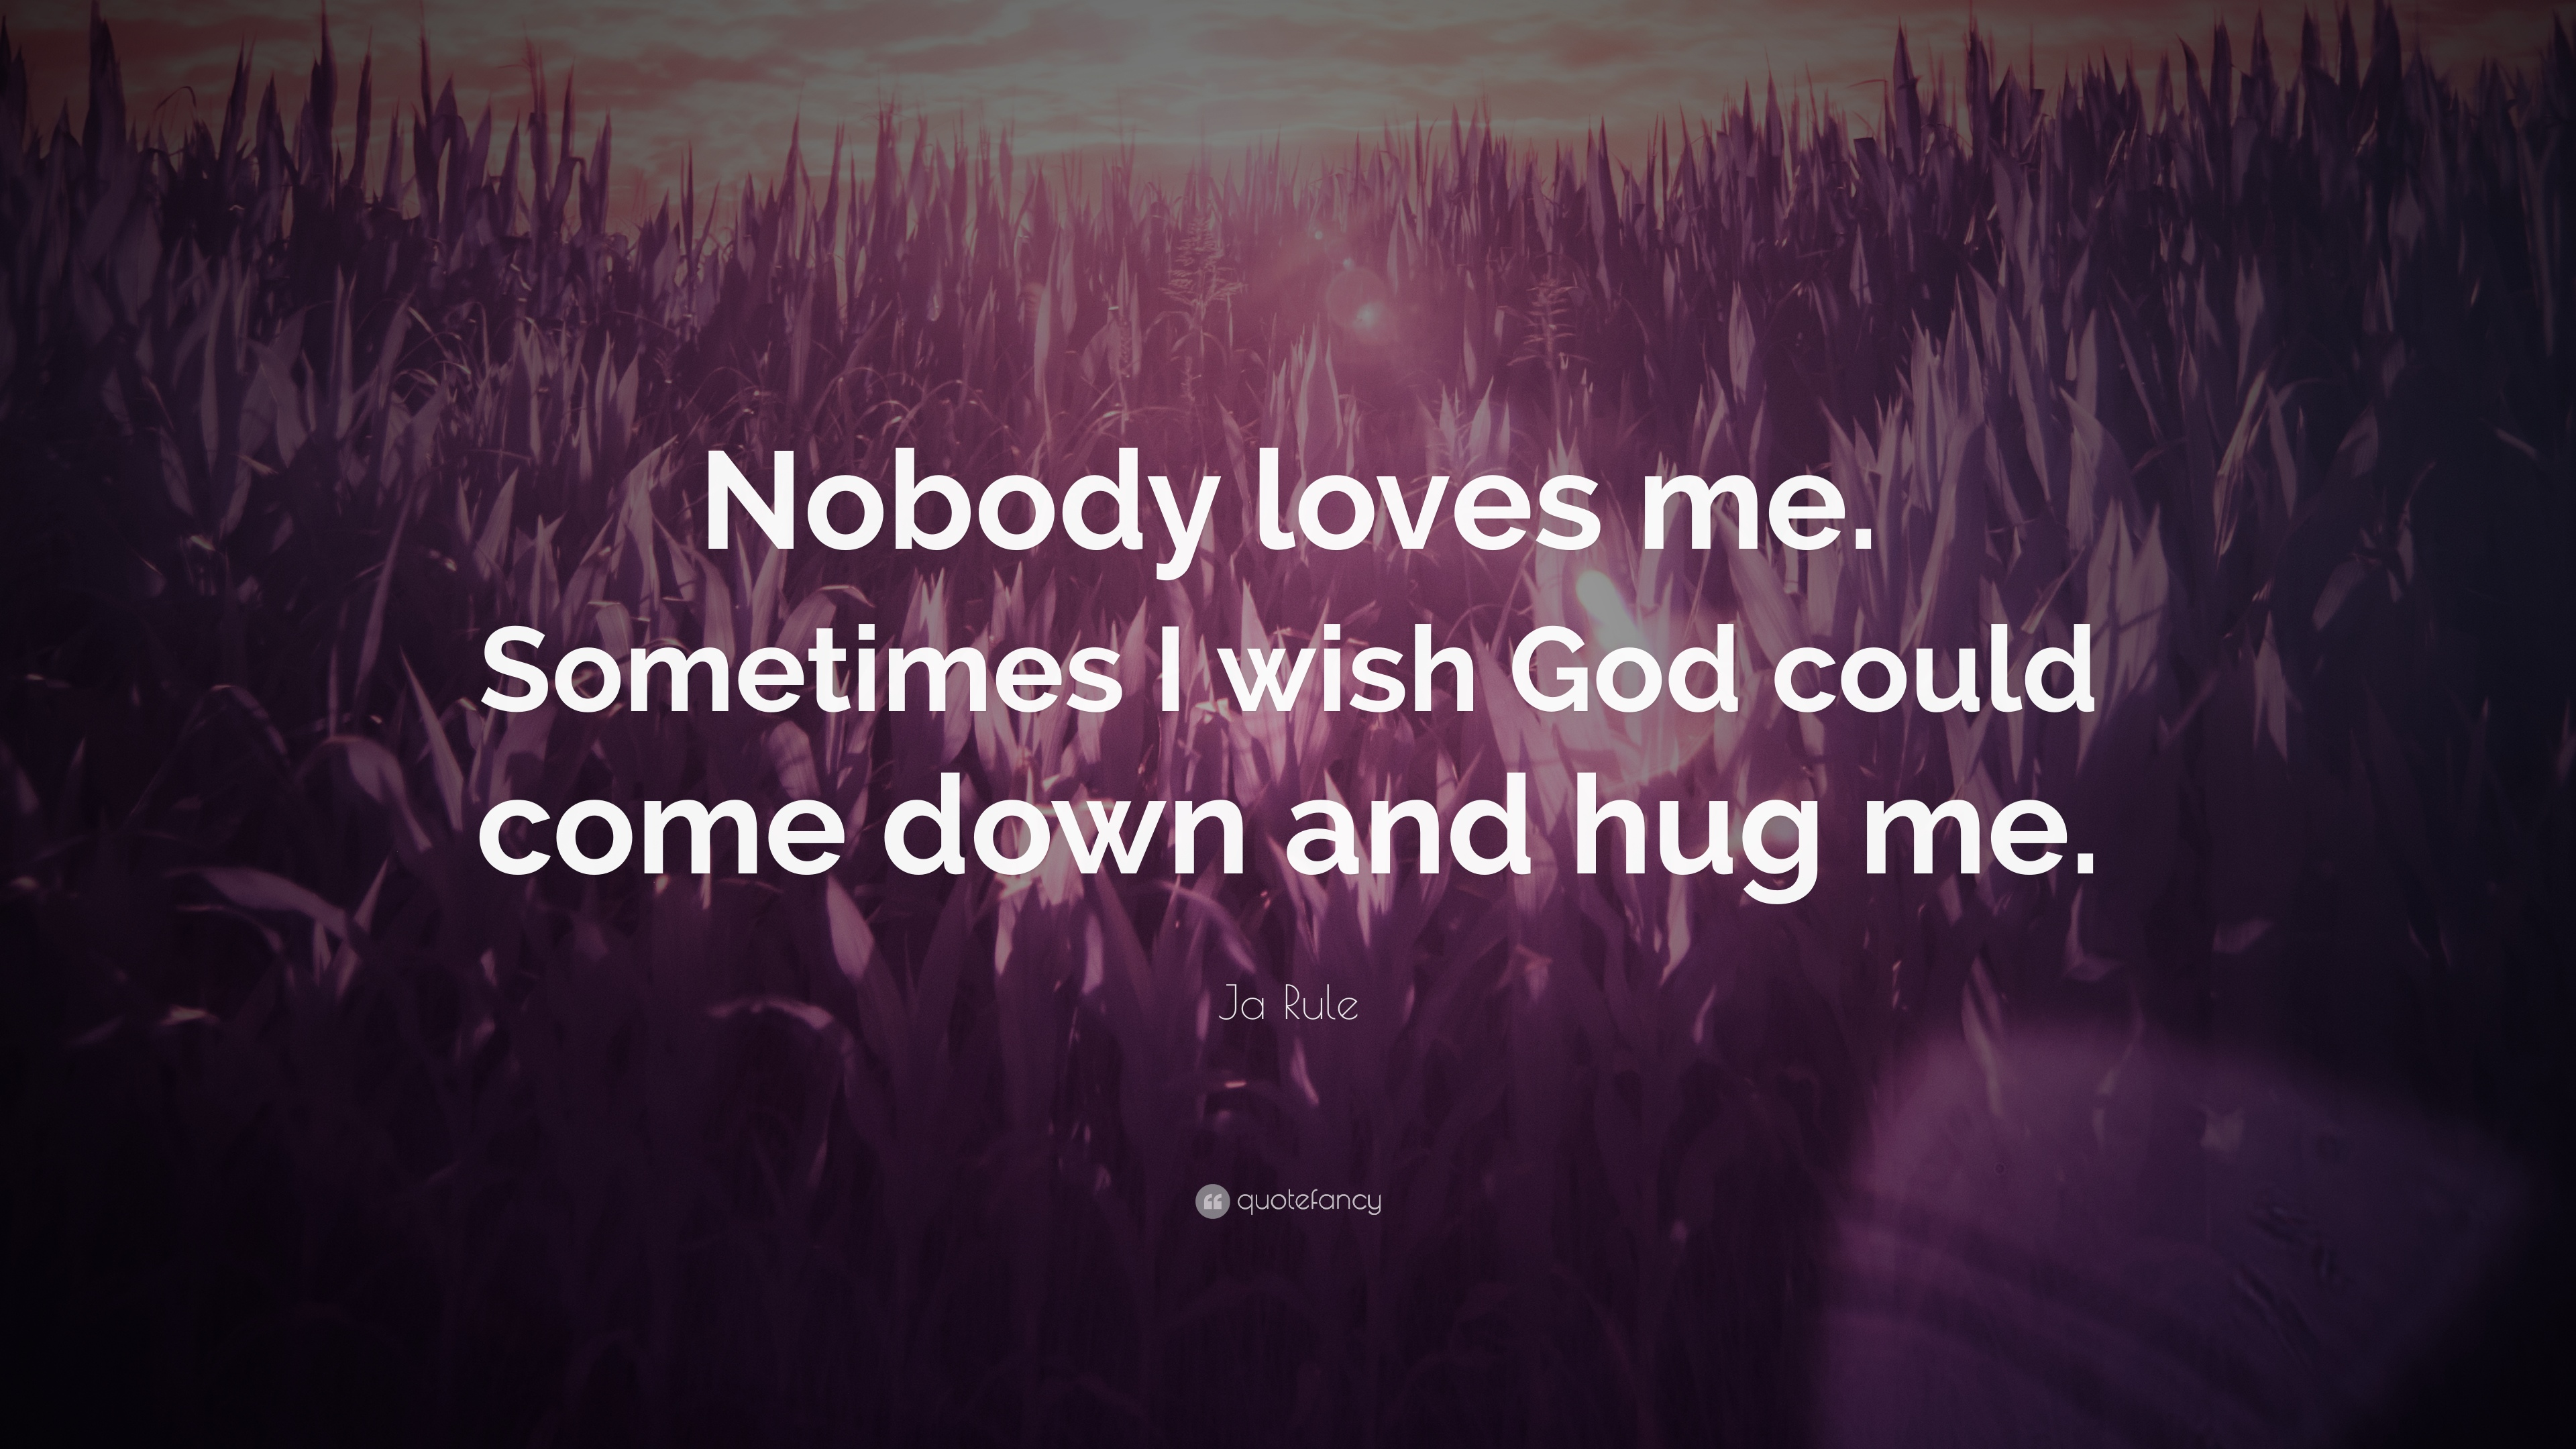 Ja Rule Love Quotes Pretty ja rule quotes (57 wallpapers) - quotefancy